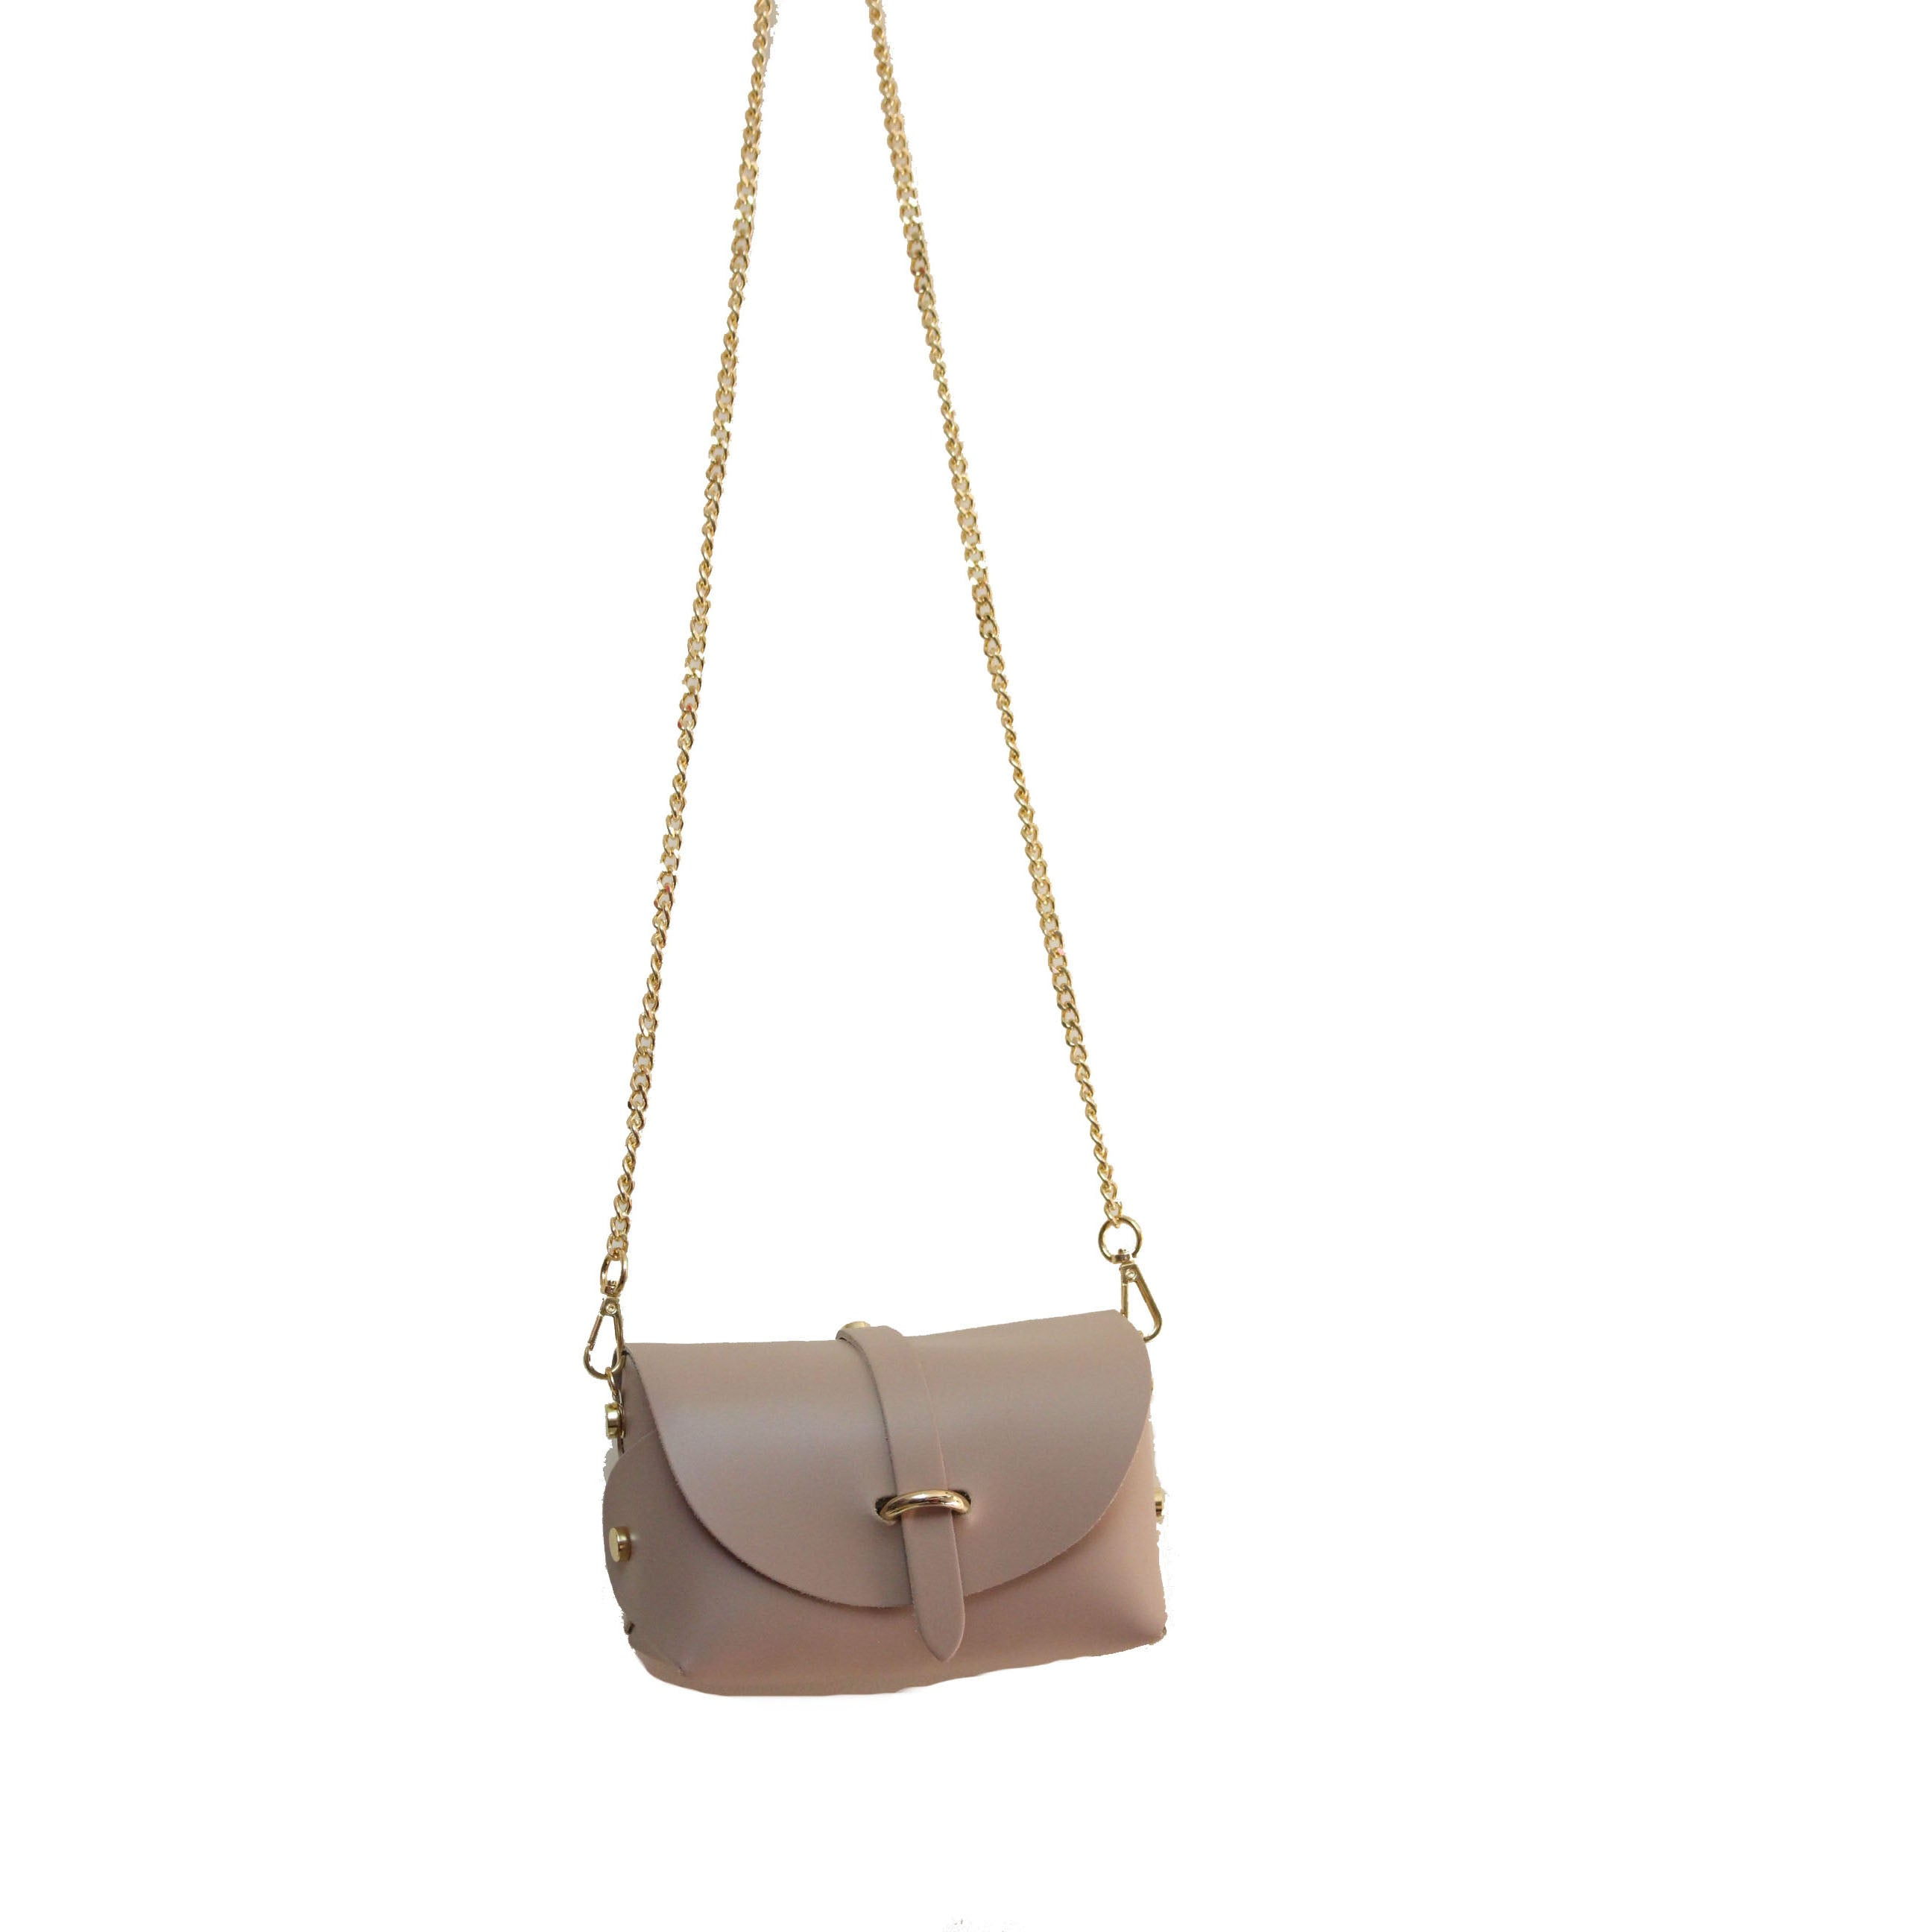 Smoke Rose evening clutch leather bag with detachable gold chain strap